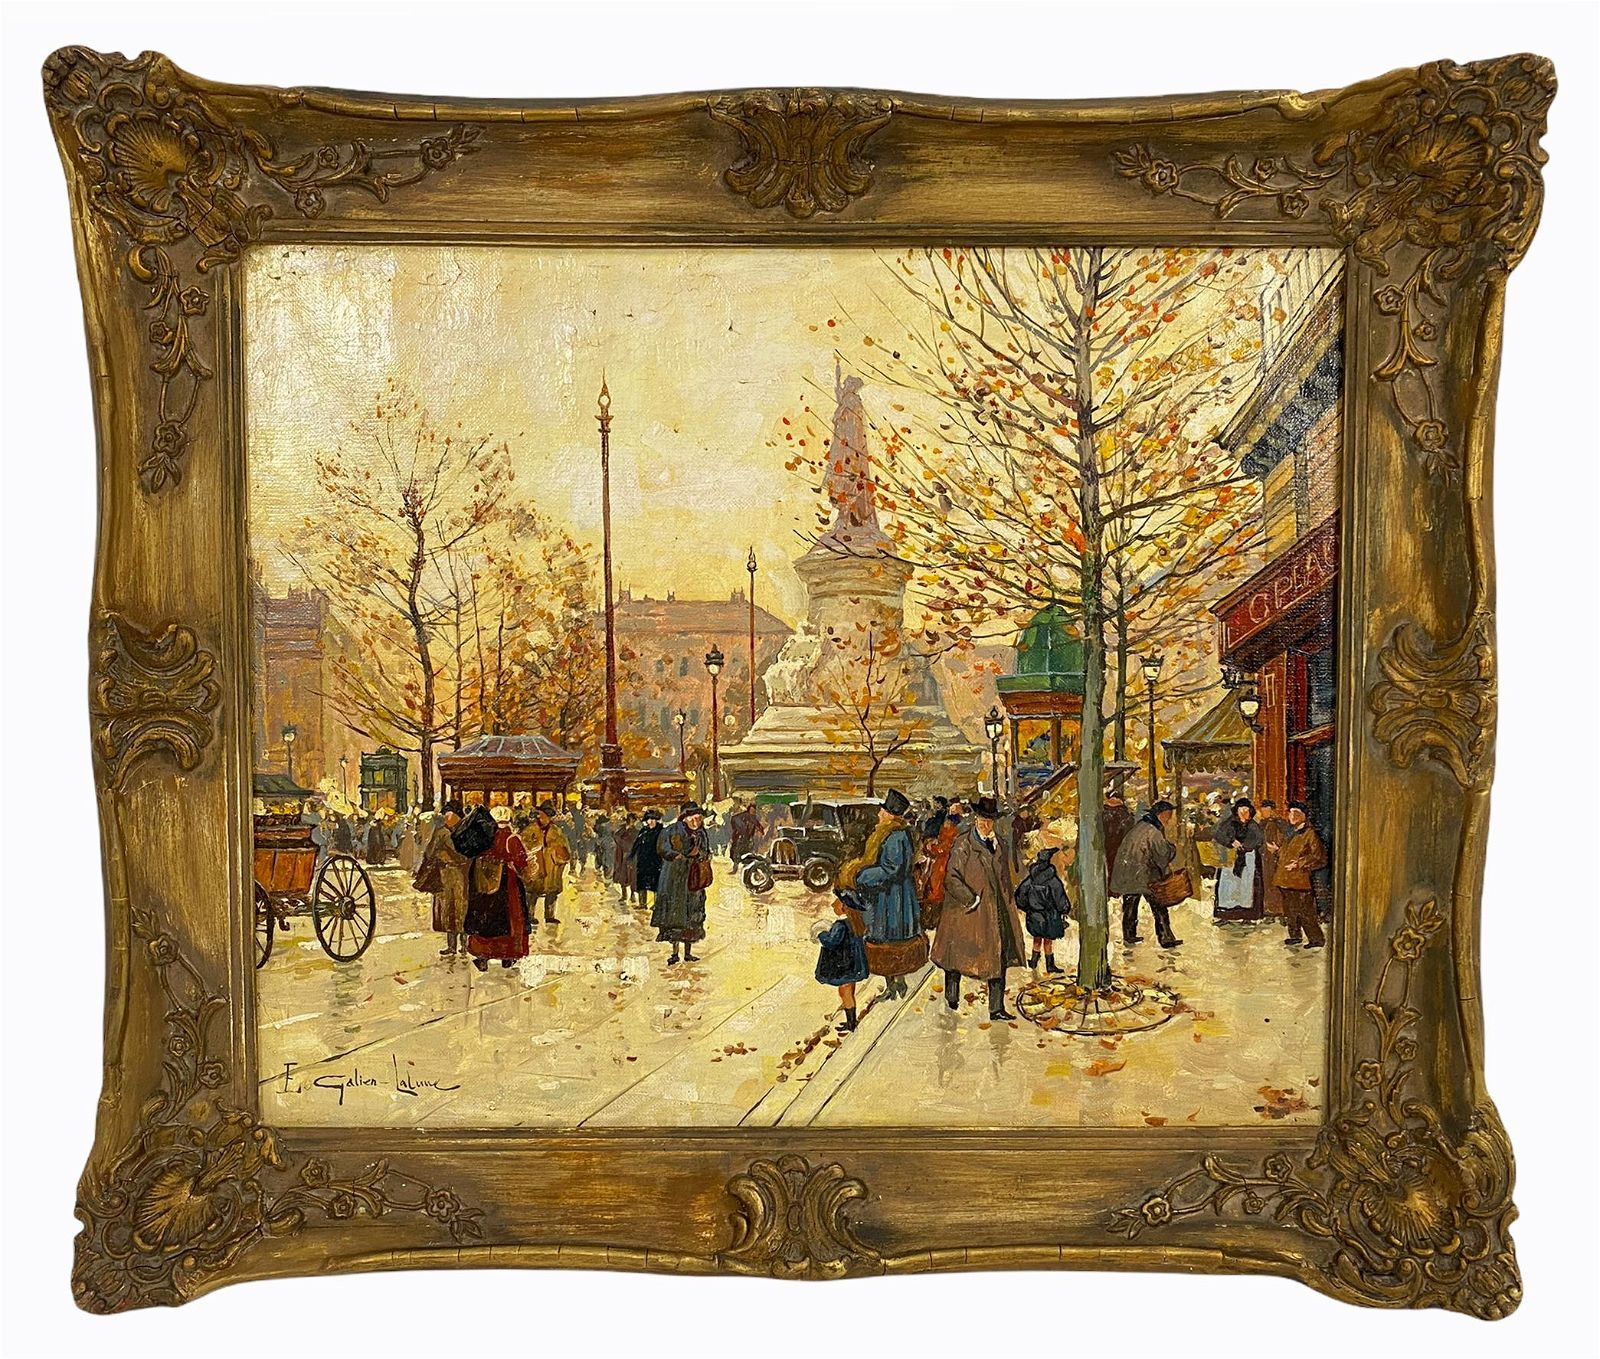 French Parisian Oil Painting after E.Galien-Laloue